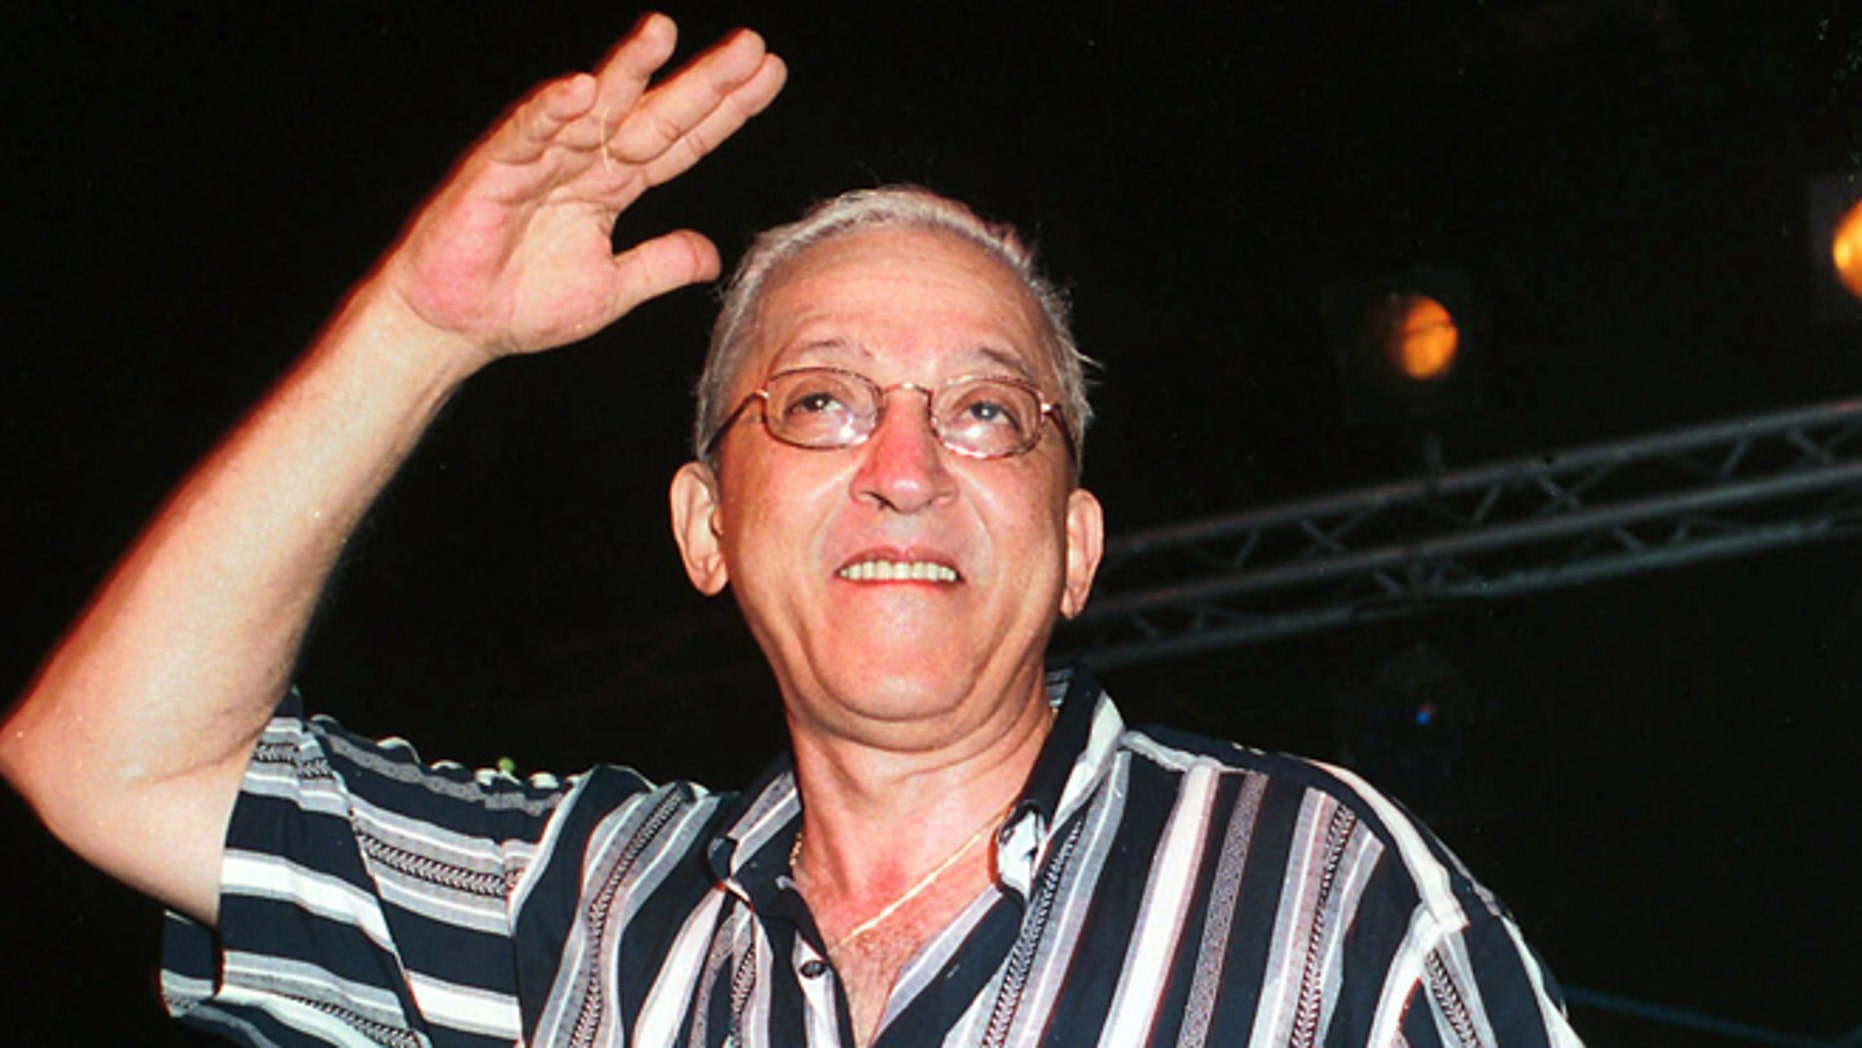 FILE - In this Aug. 26, 2001 file photo, Juan Formell, leader of the Cuban orchestra Los Van Van, performs late Sunday in Havana, Cuba during a farewell summer concert. The noted Cuban musican, who for more than four decades was the driving force behind the big band salsa orchestra Los Van Van, has died. He was 71 years old. Formell's death was announced Thursday, May 1, 2014, on Cuban state television. (AP Photo/Ernesto Mastrascusa, File)